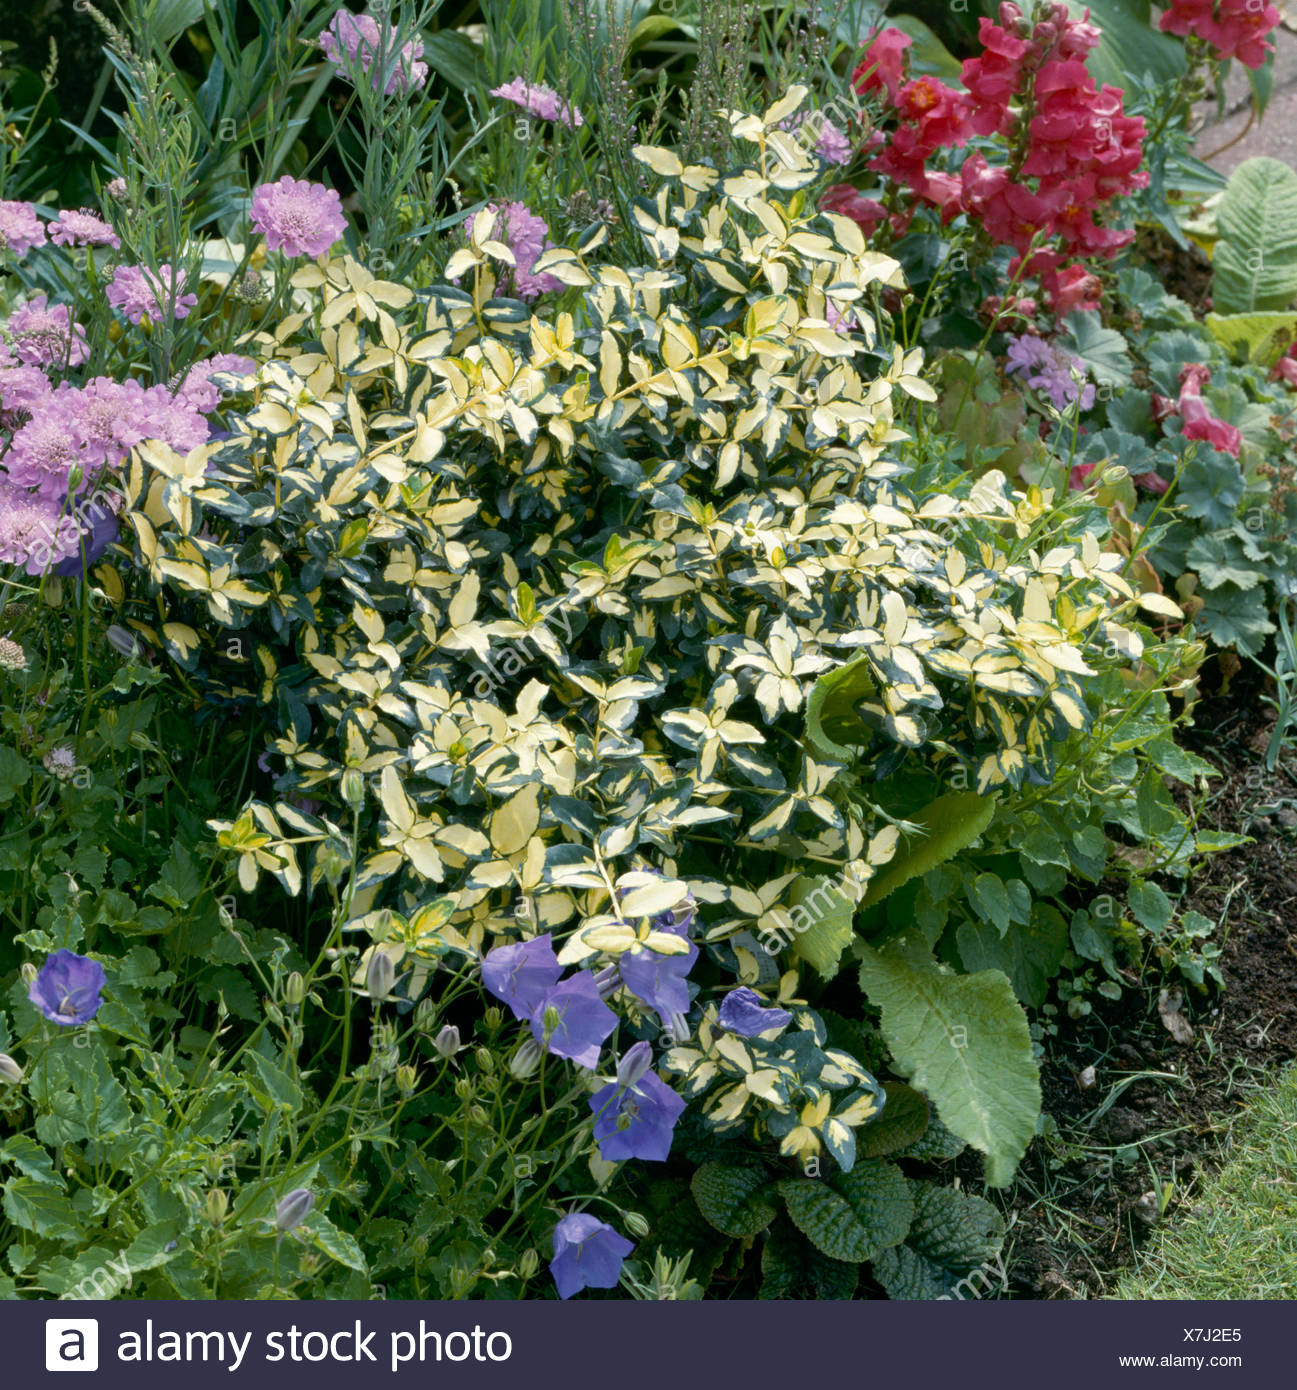 Euonymus fortunei - `Blondy'   TRS058038 - Stock Image